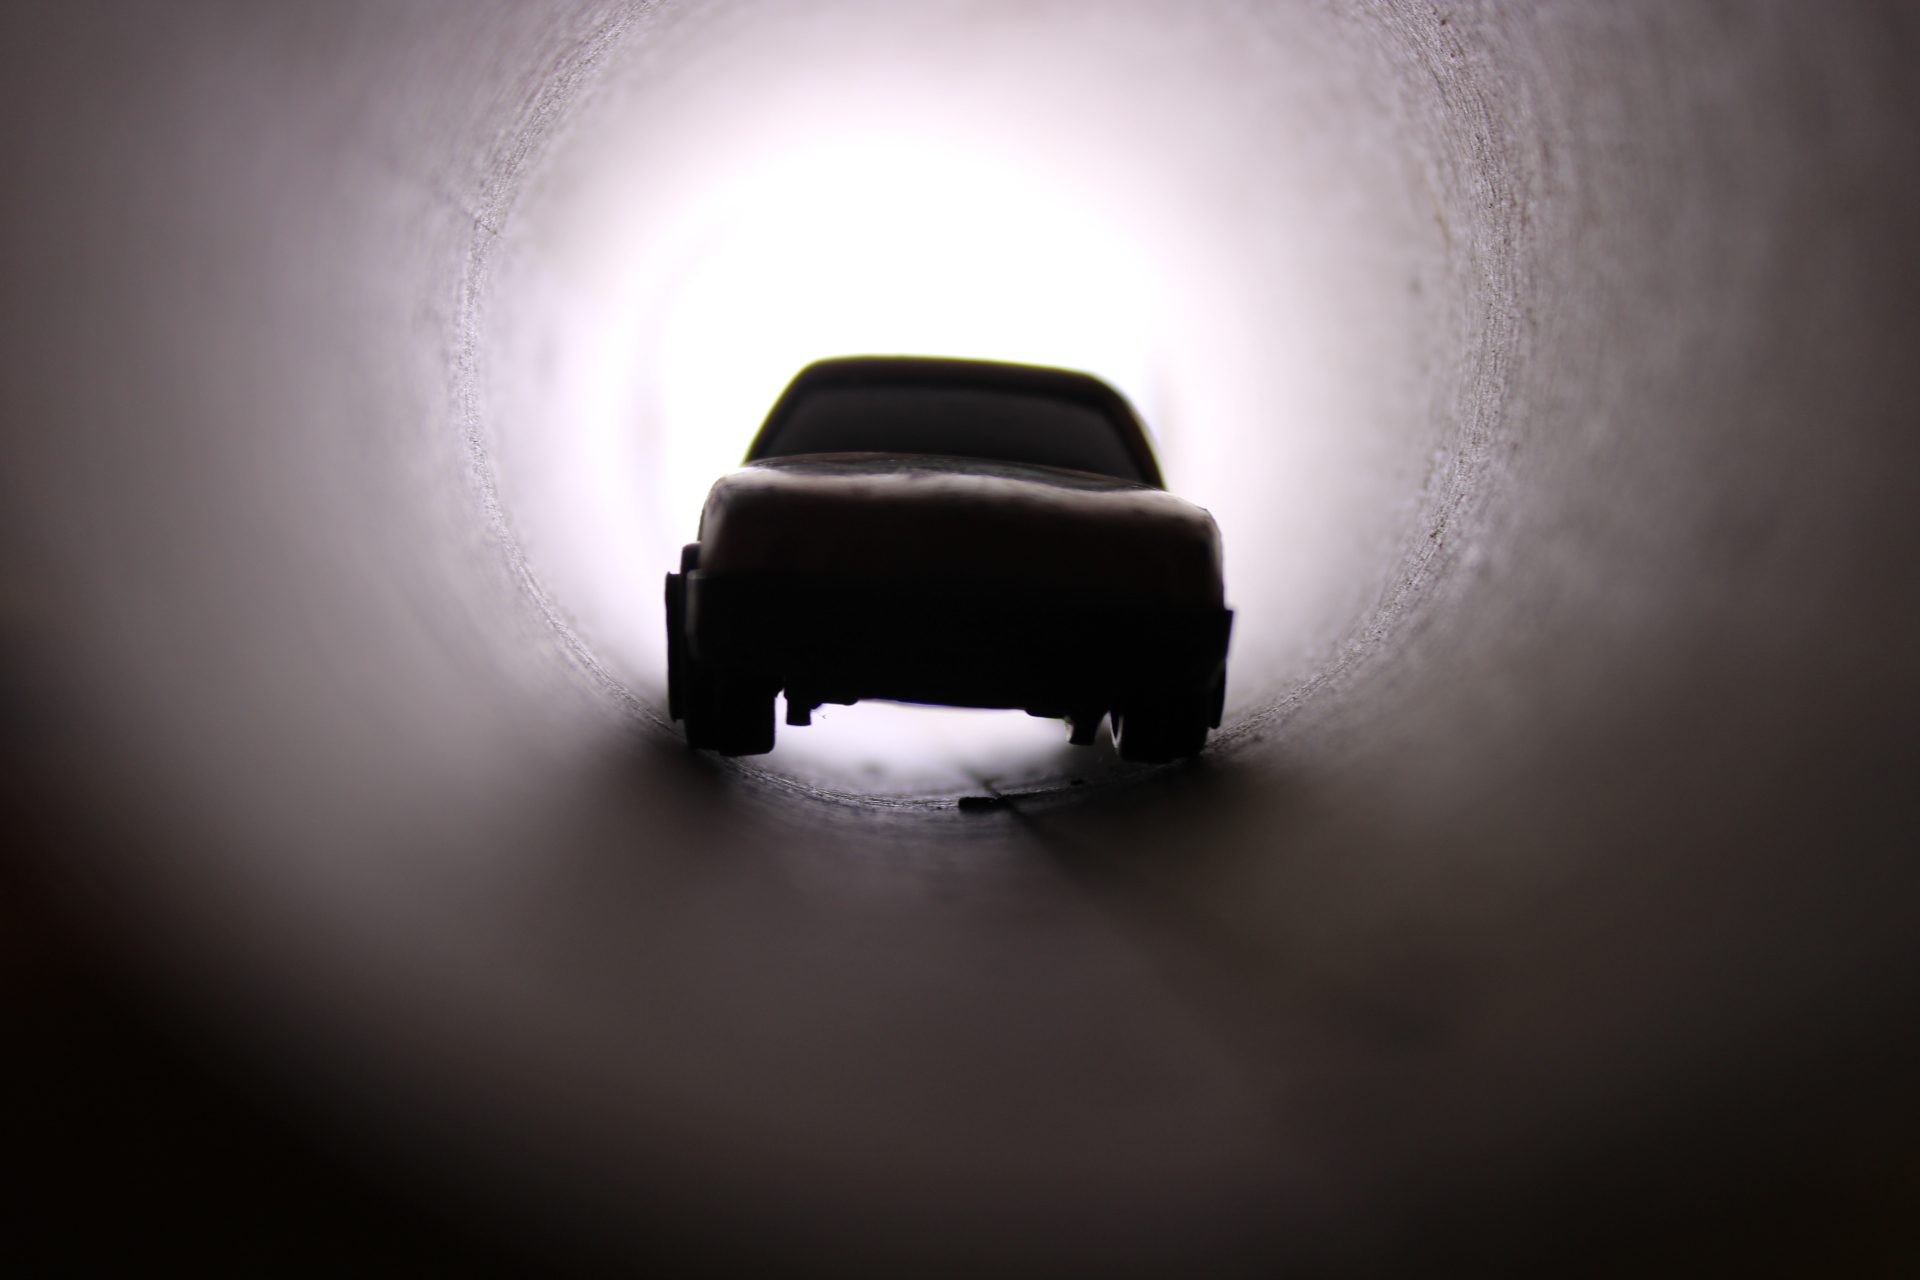 Car in a Tunnel